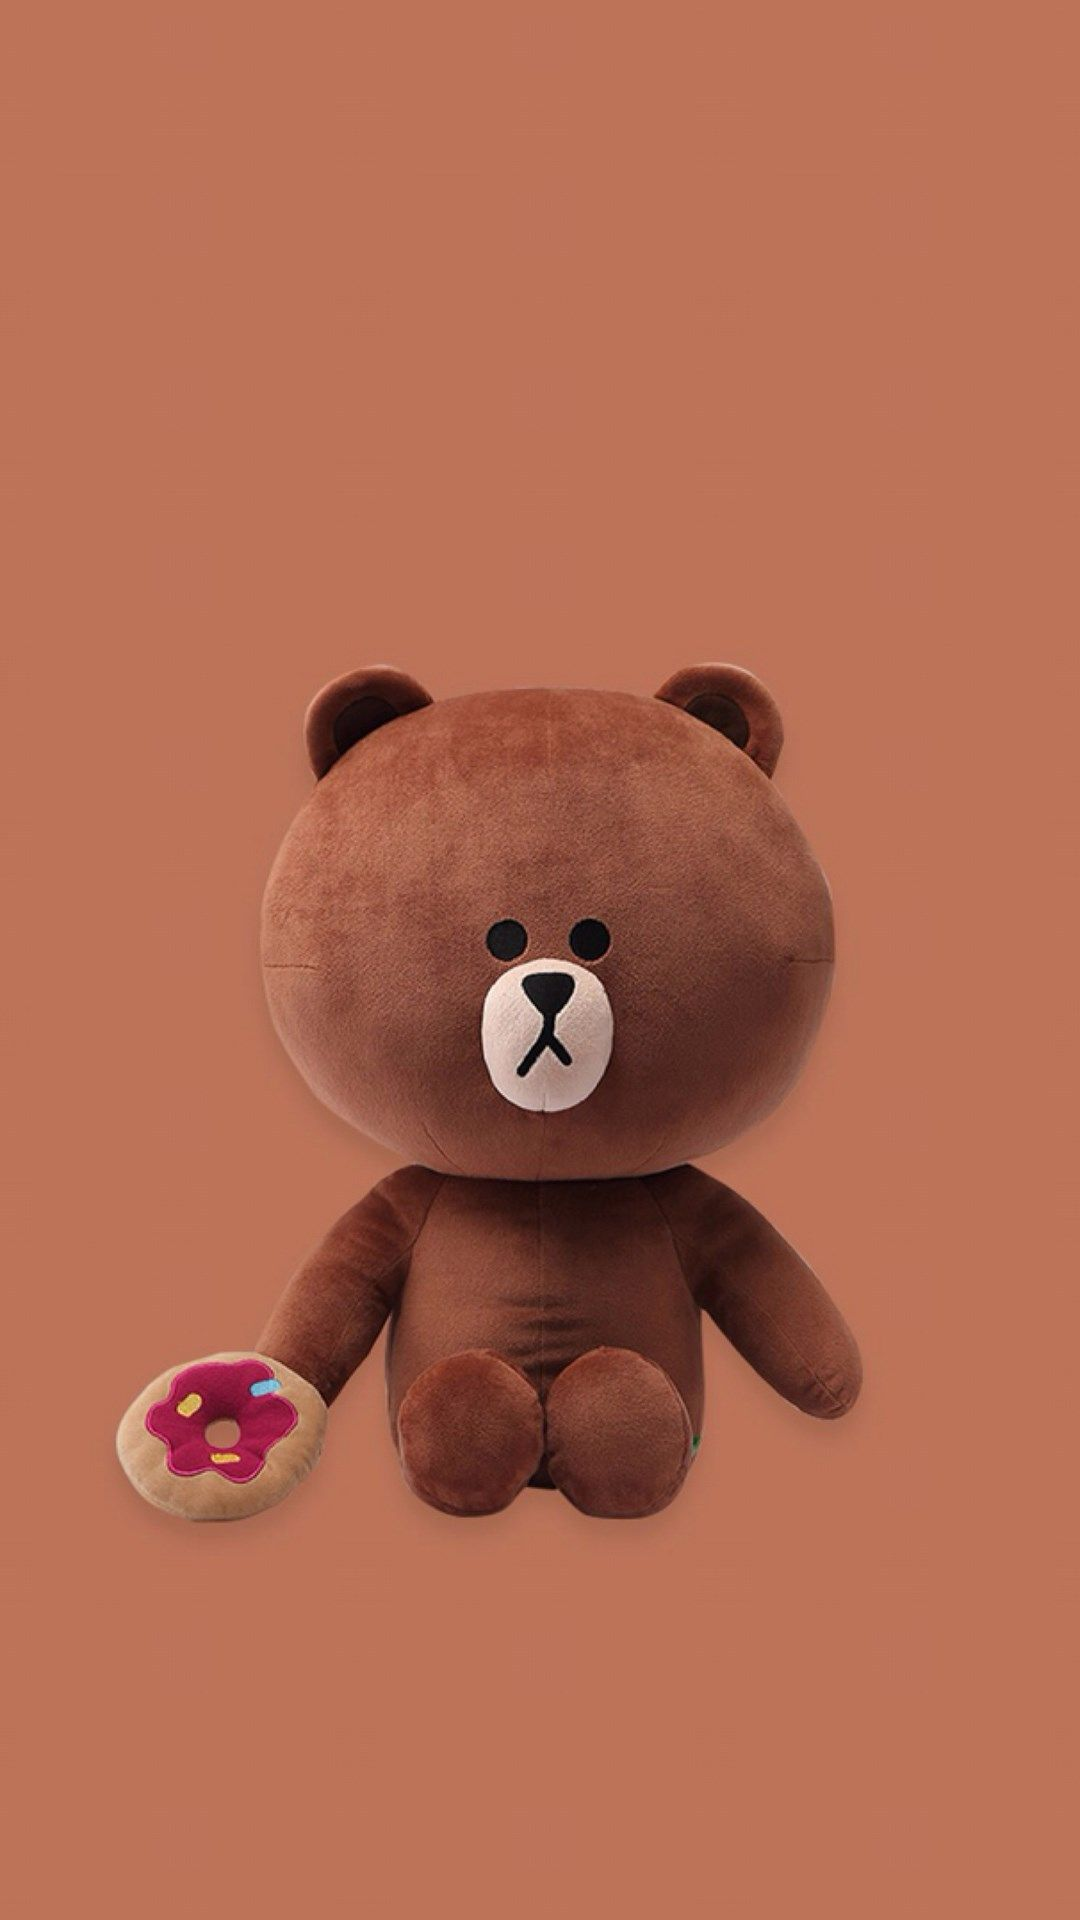 Iphone 7 Wallpaper Hd 438 Wallpaper Iphone Cartoon Bear